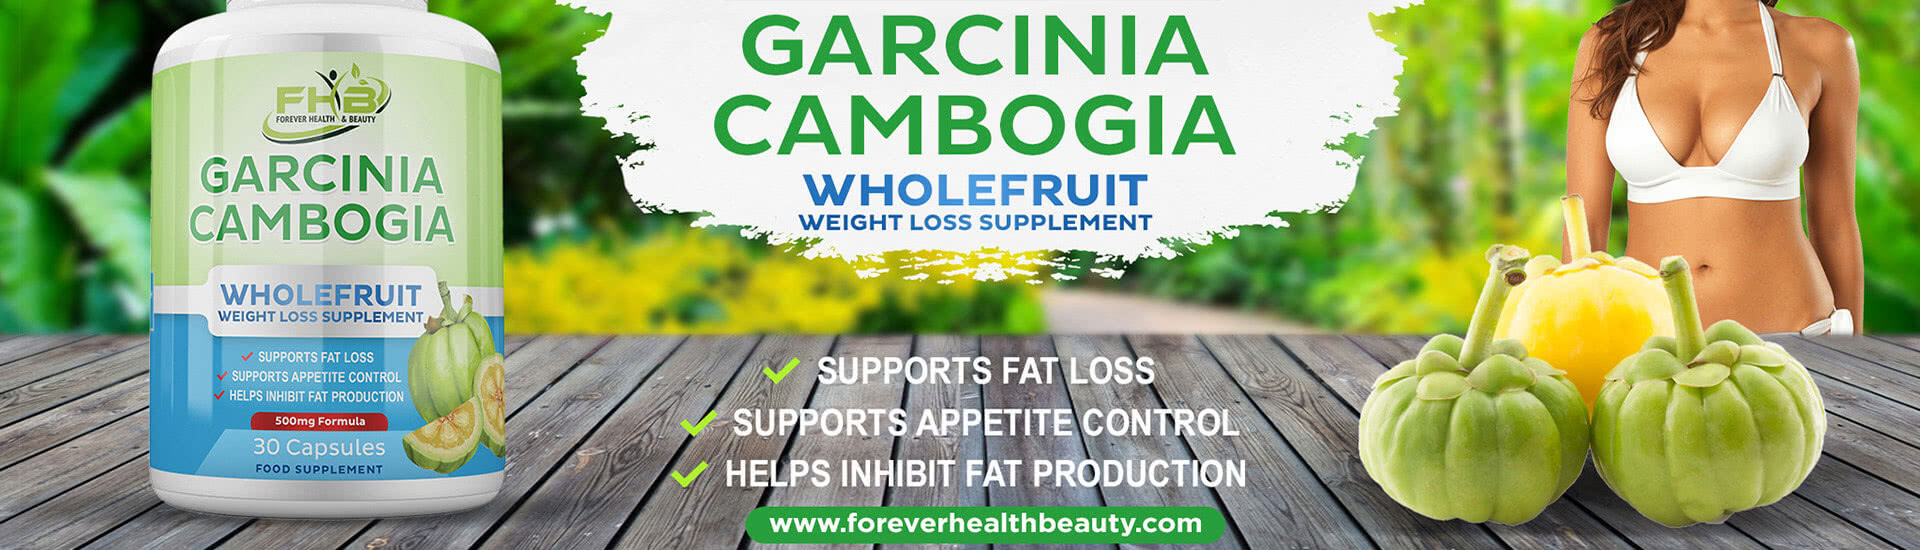 Garcinia Cambogia Weight Loss, Fat Burning and Diet Supplement